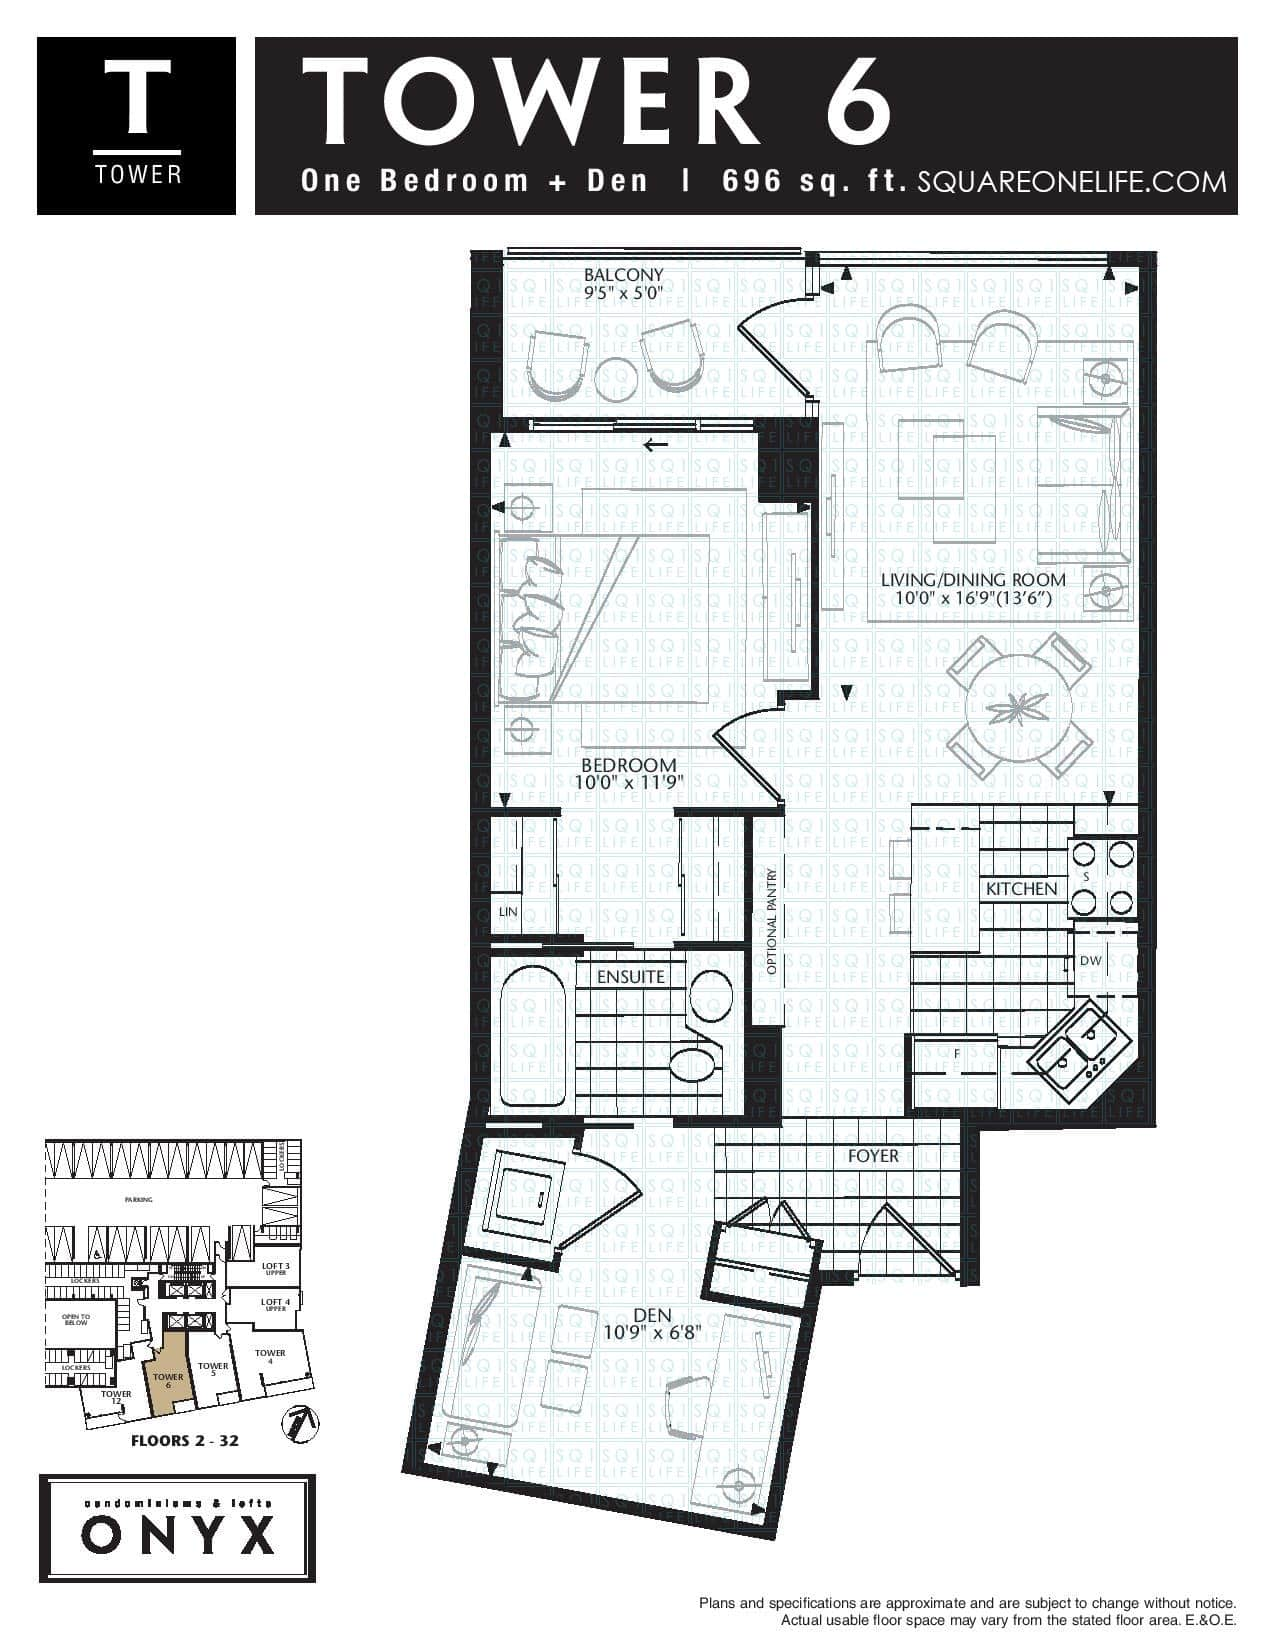 223-Webb-Dr-Onyx-Condo-Floorplan-Tower-6-1-Bed-1-Den-1-Bath onyx condo Onyx Condo 223 Webb Dr Onyx Condo Floorplan Tower 6 1 Bed 1 Den 1 Bath